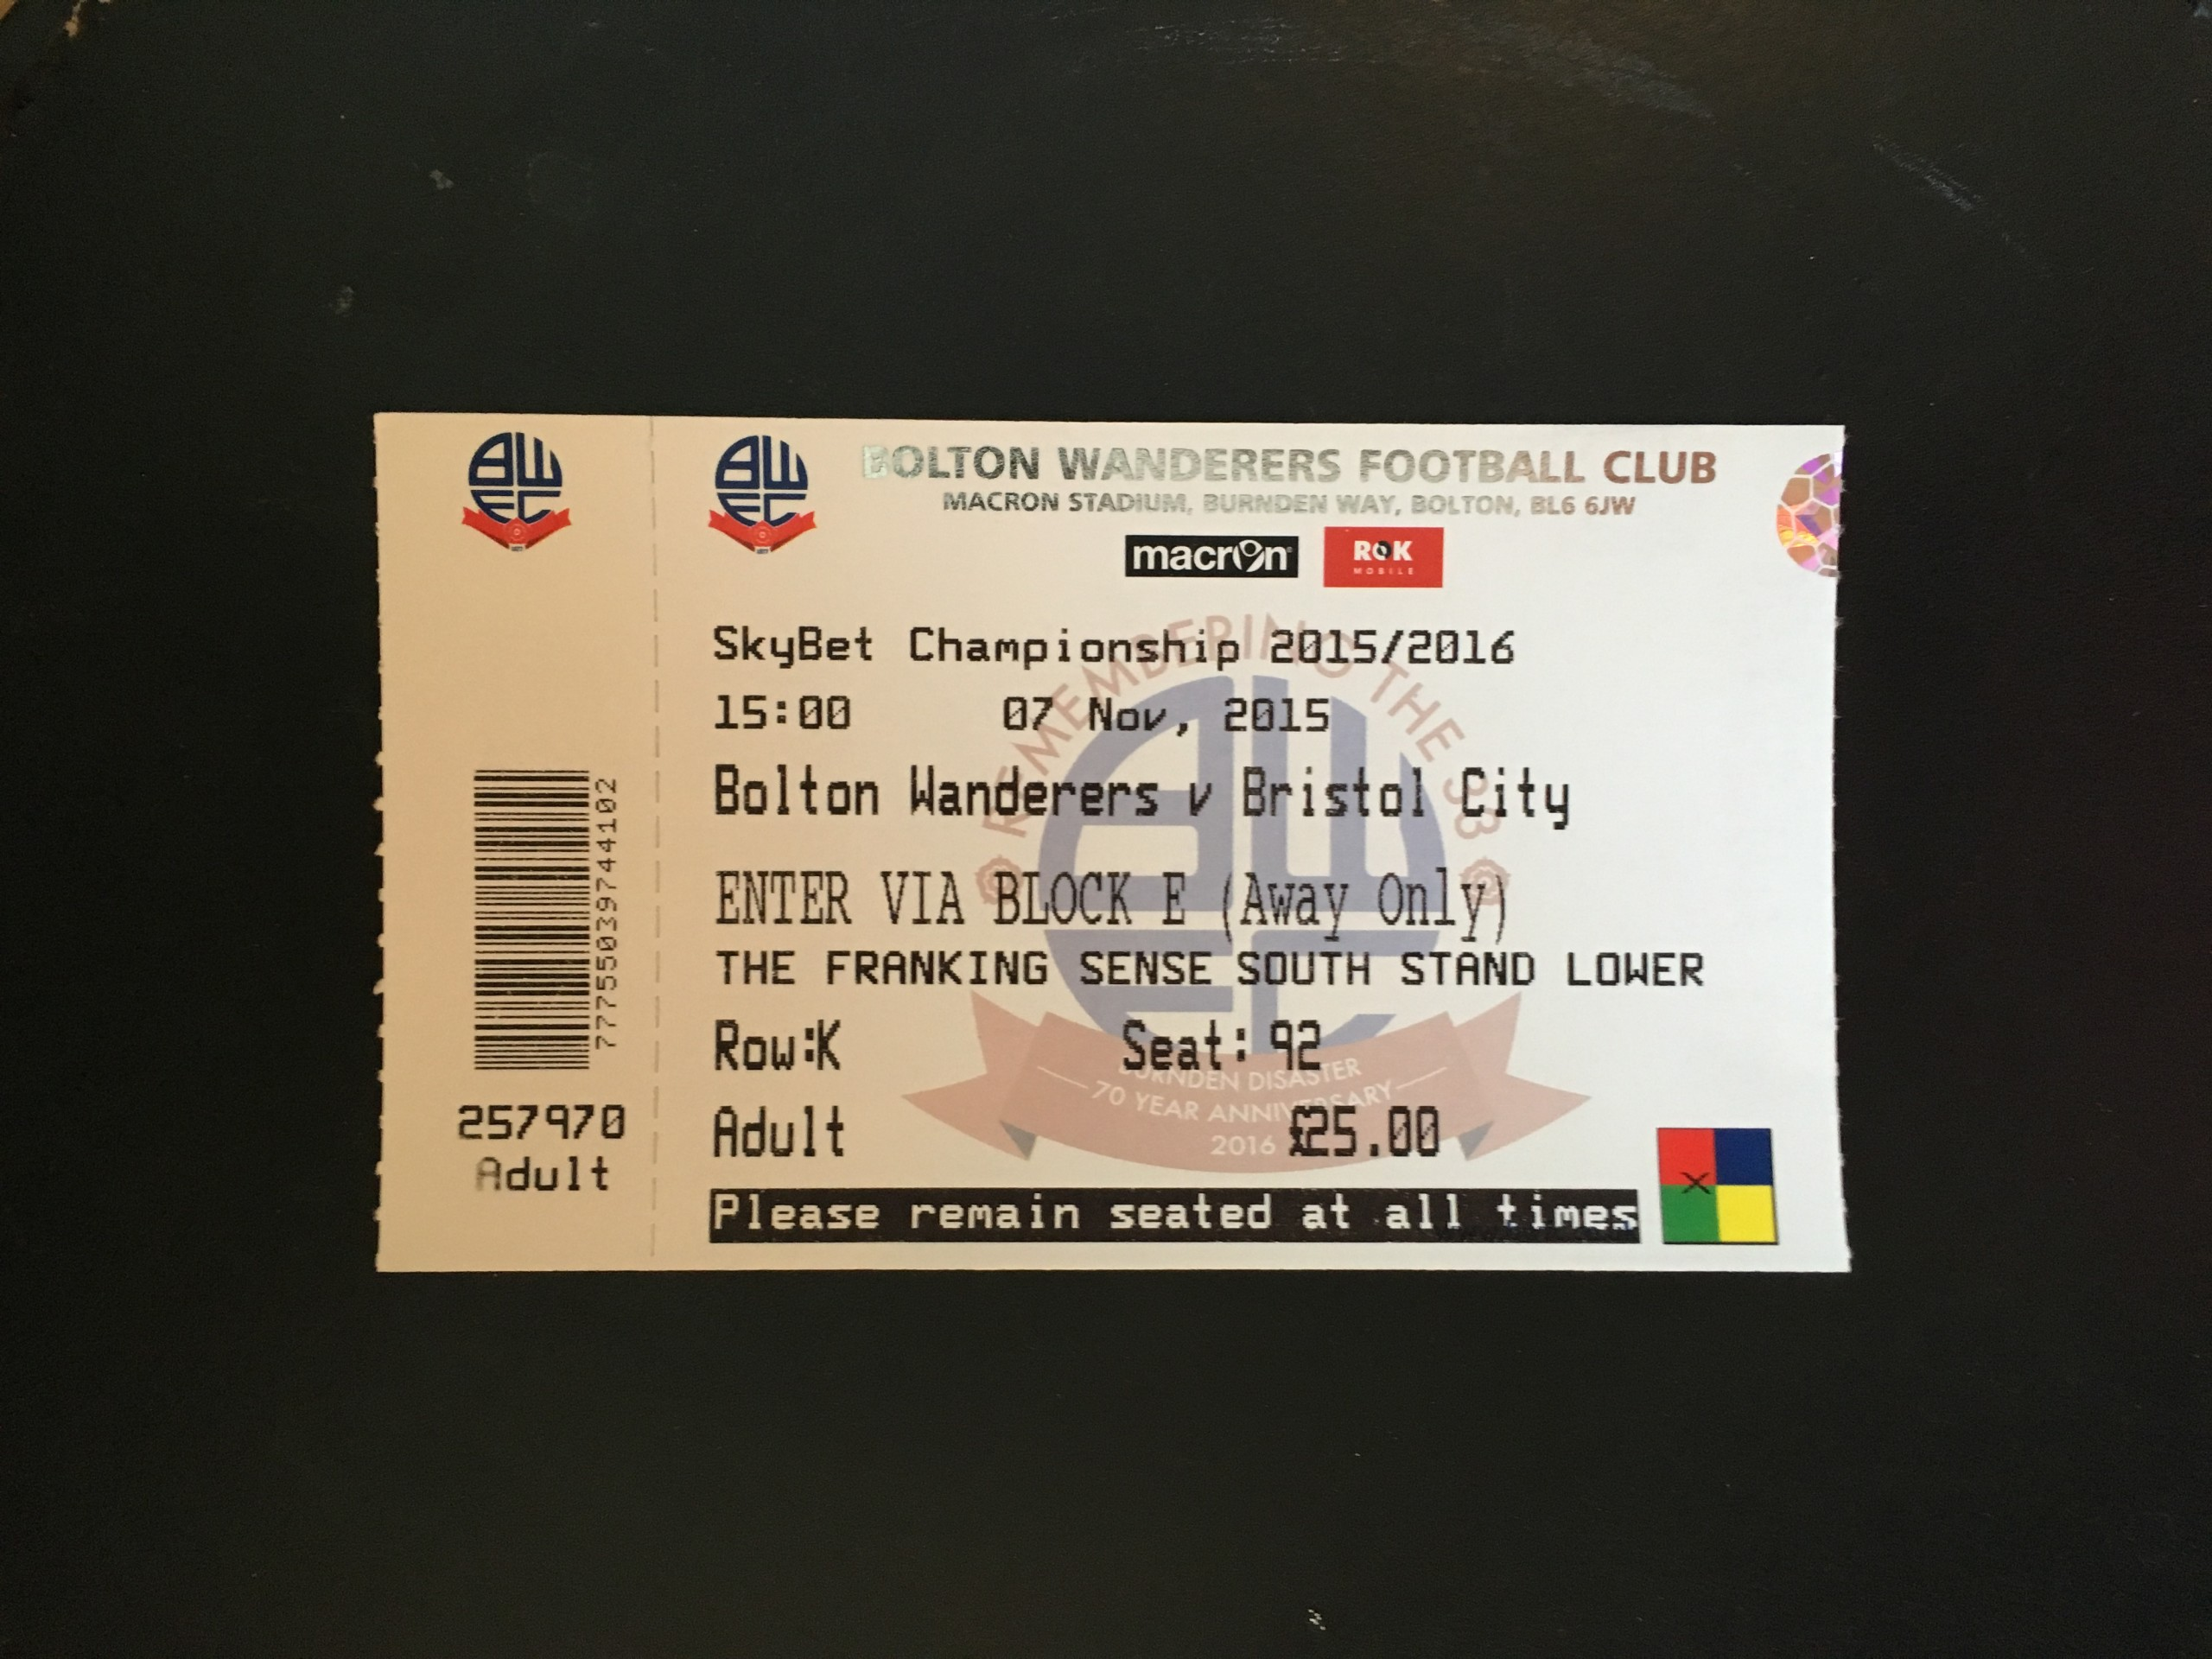 Bolton Wanderers v Bristol City 07-11-2015 Ticket